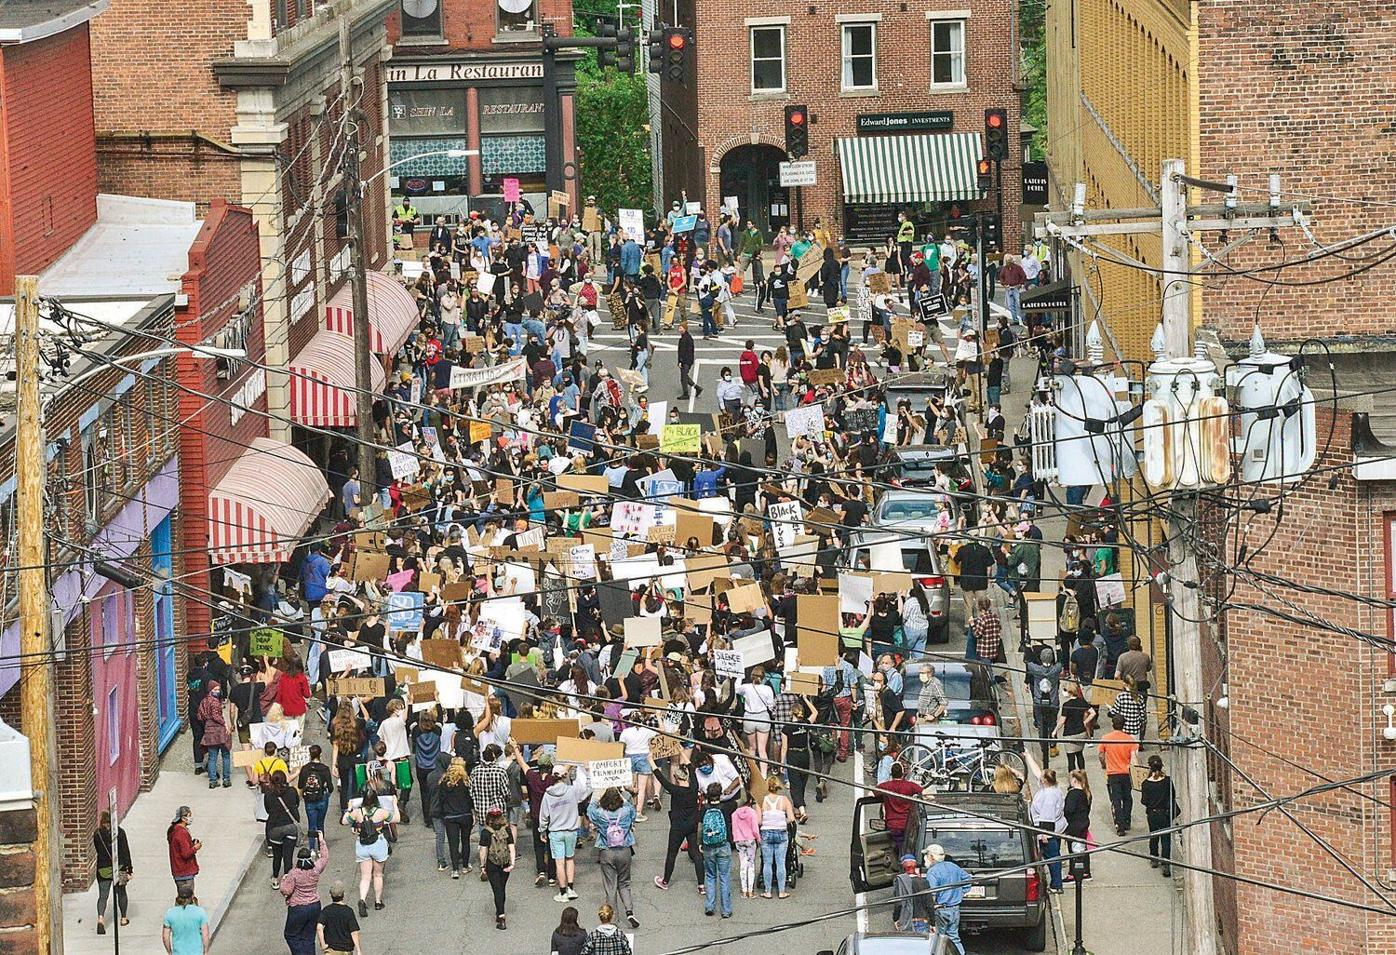 Taking to the streets: Youth rally against police brutality